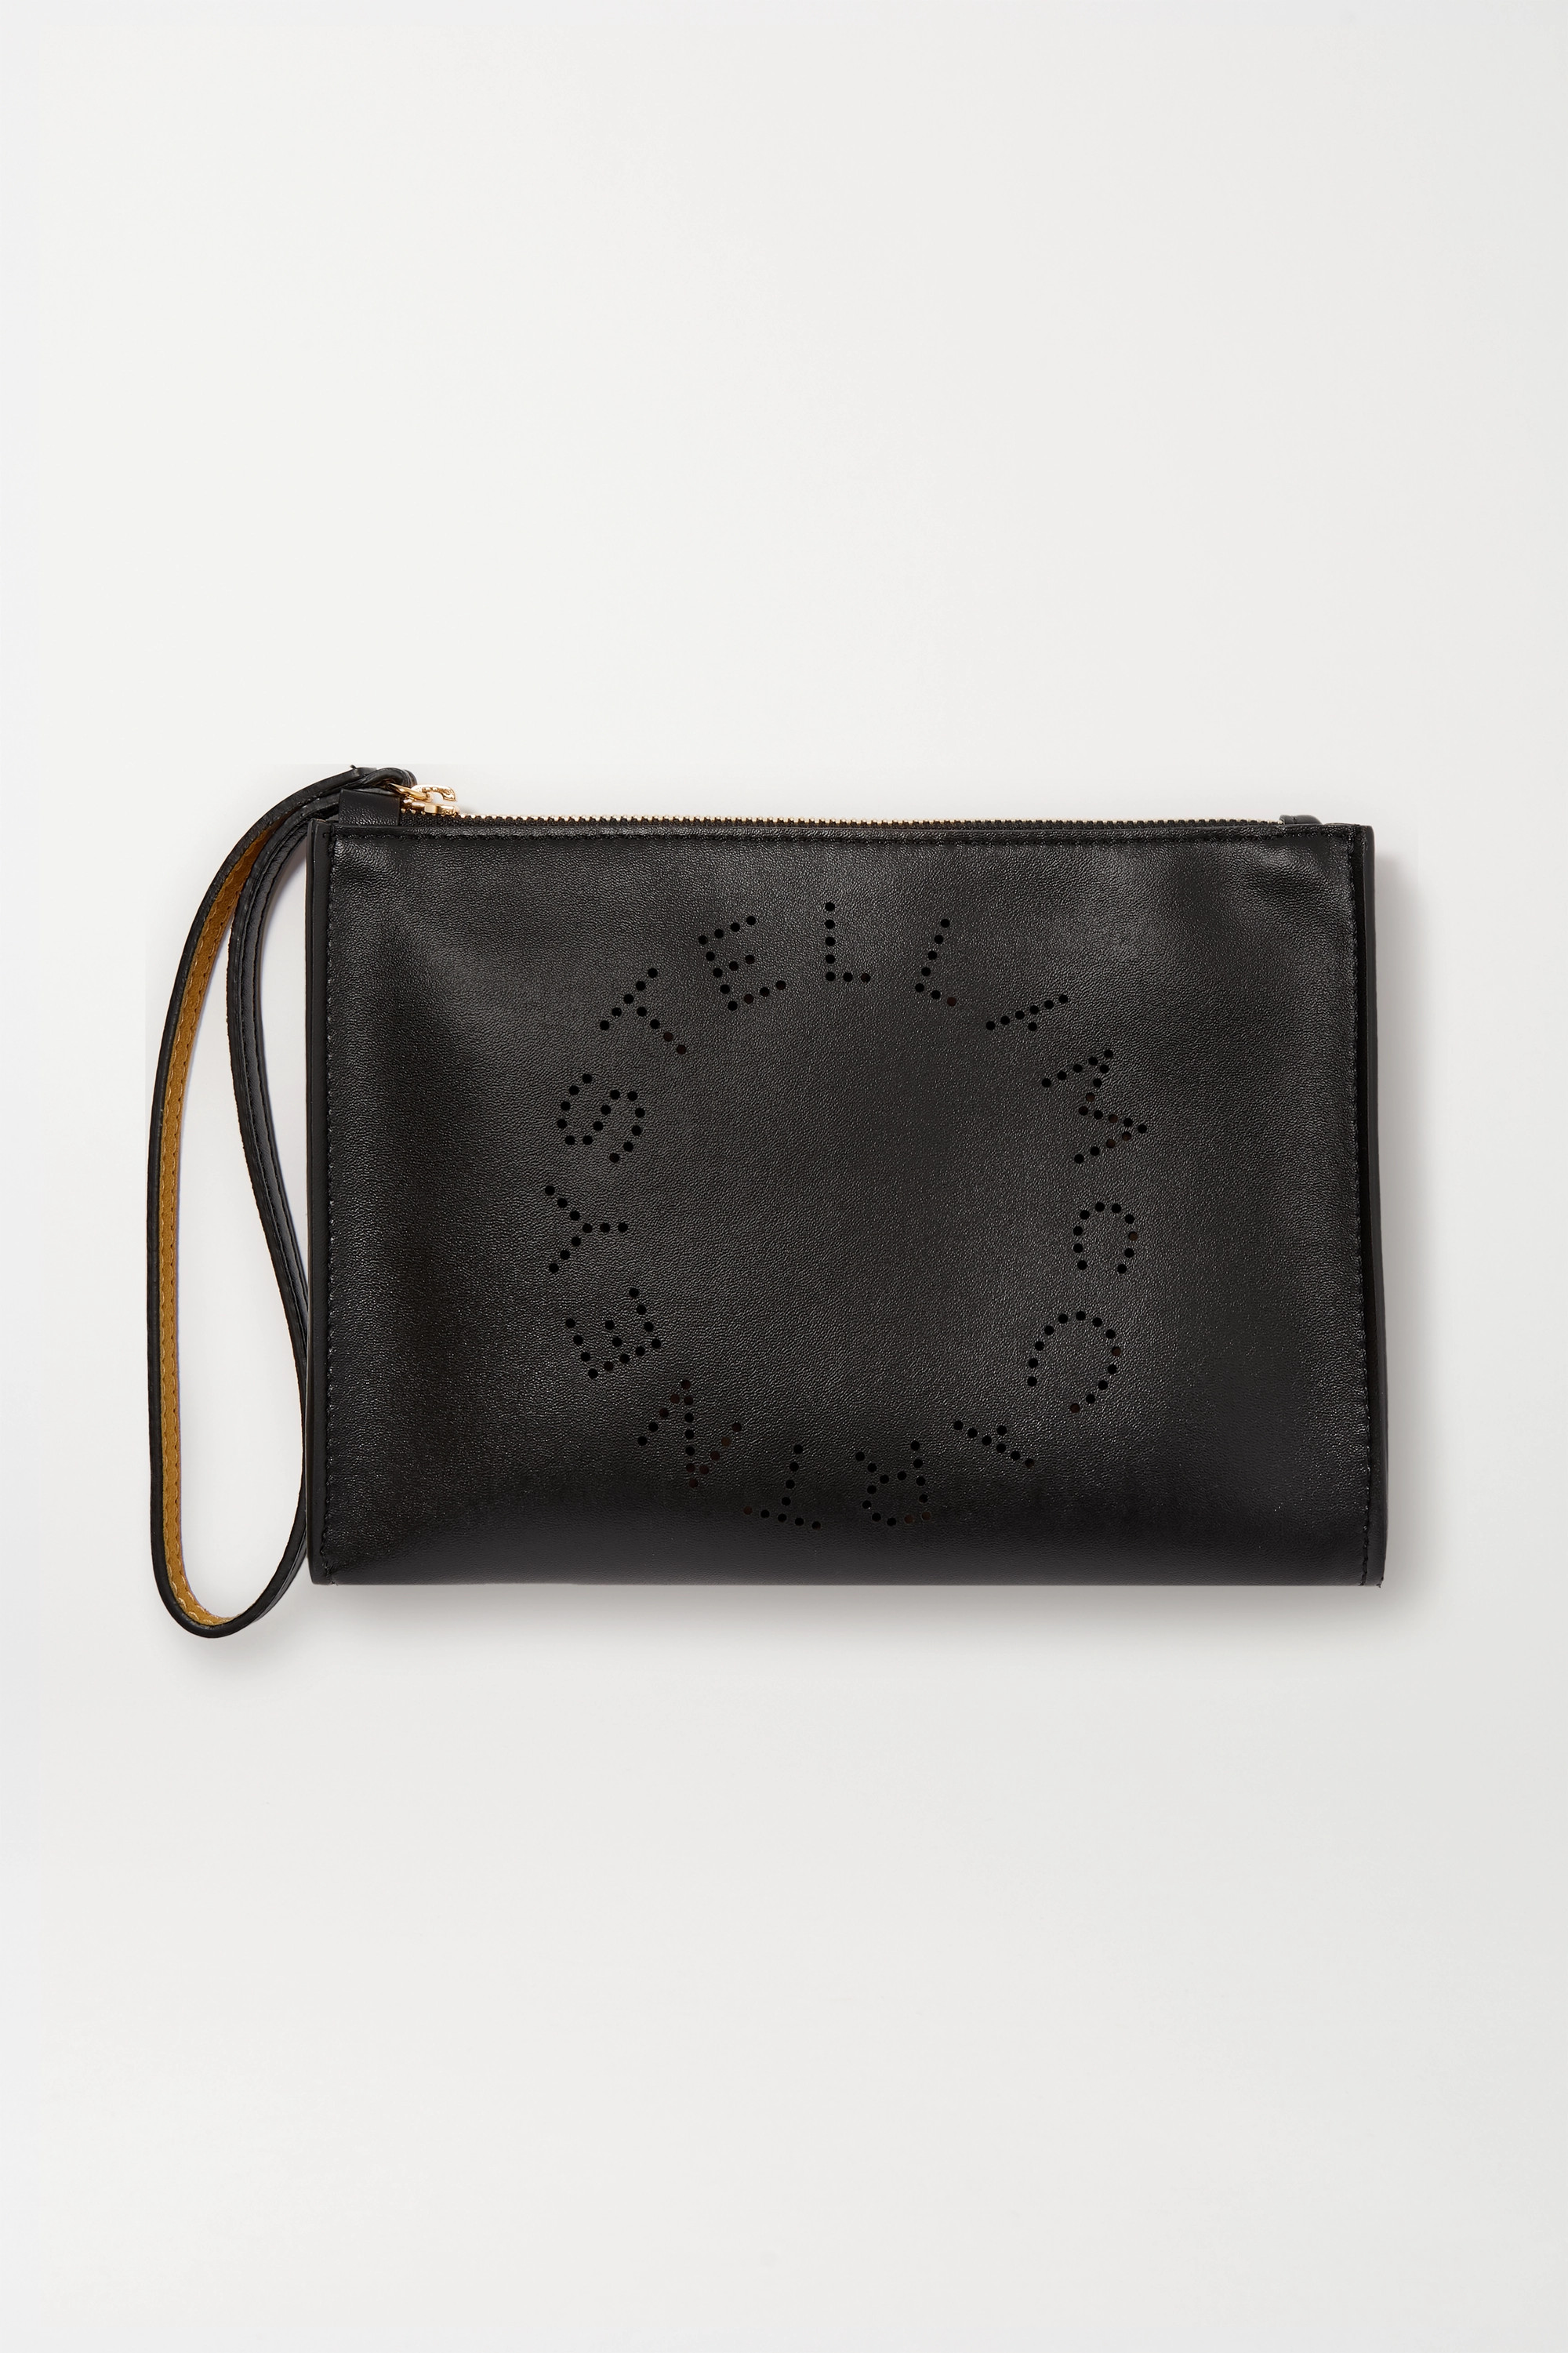 Stella McCartney Perforated vegetarian leather pouch